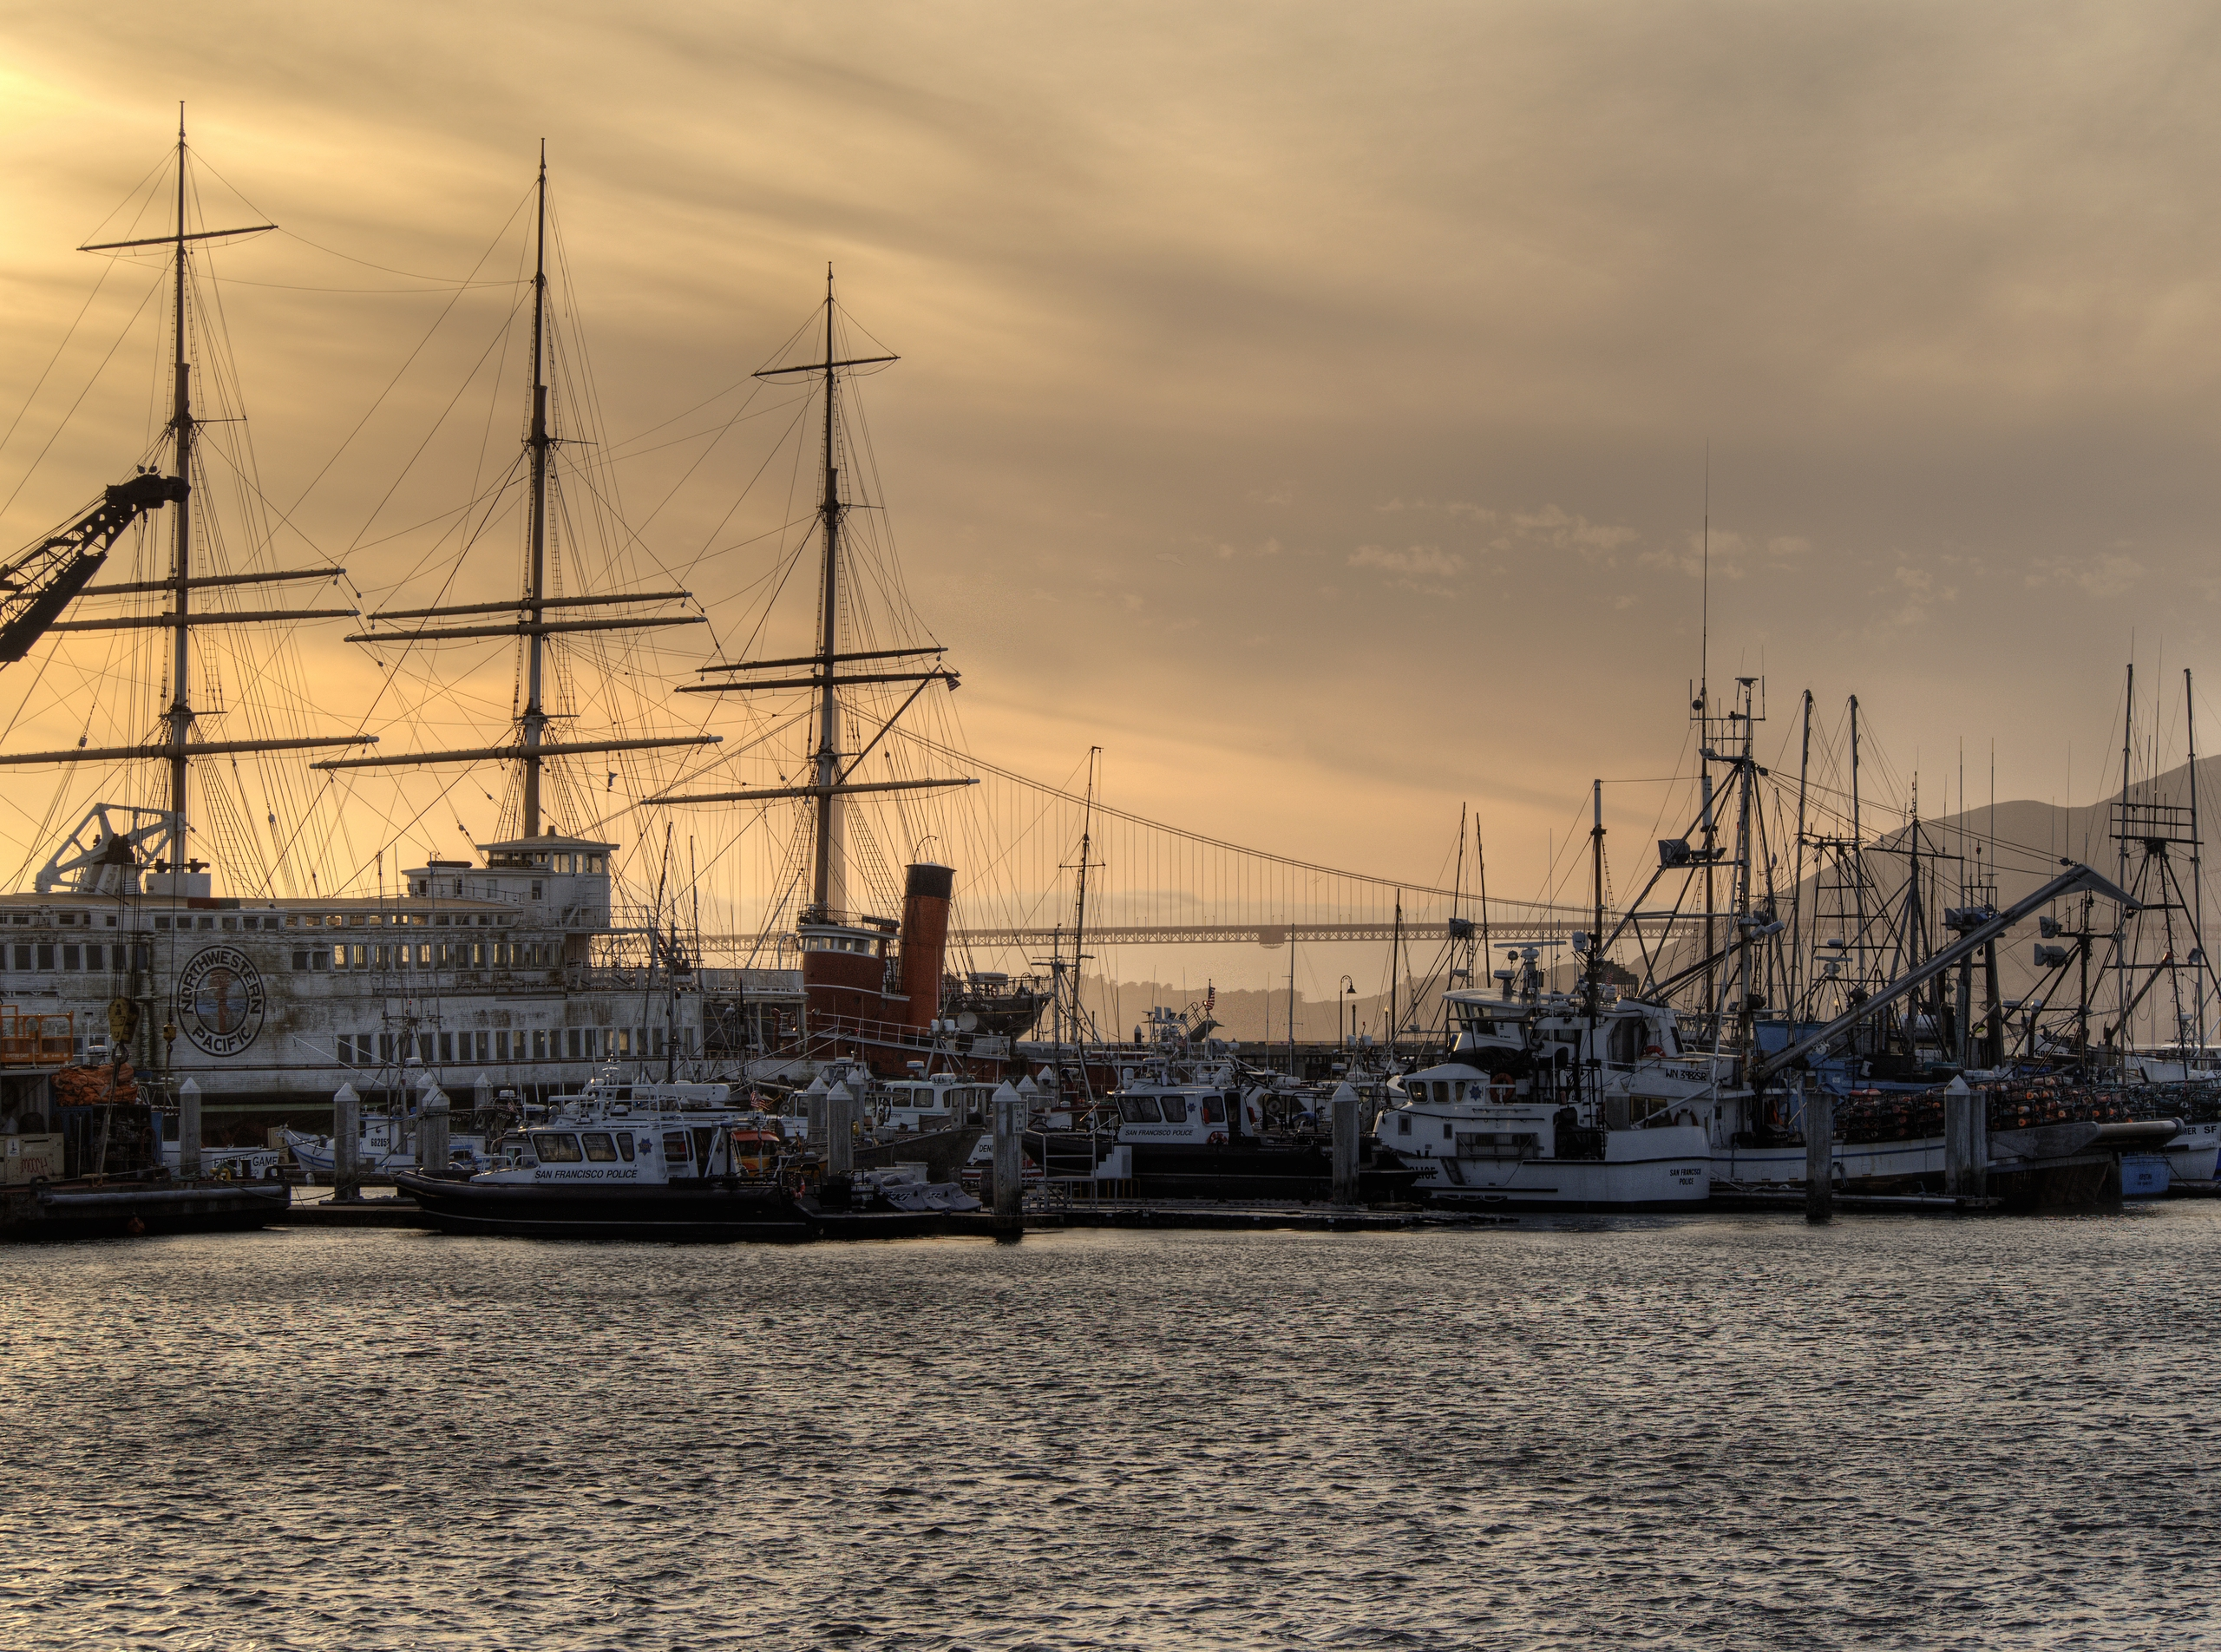 sanfran_fishing_fleet_sunset.jpg